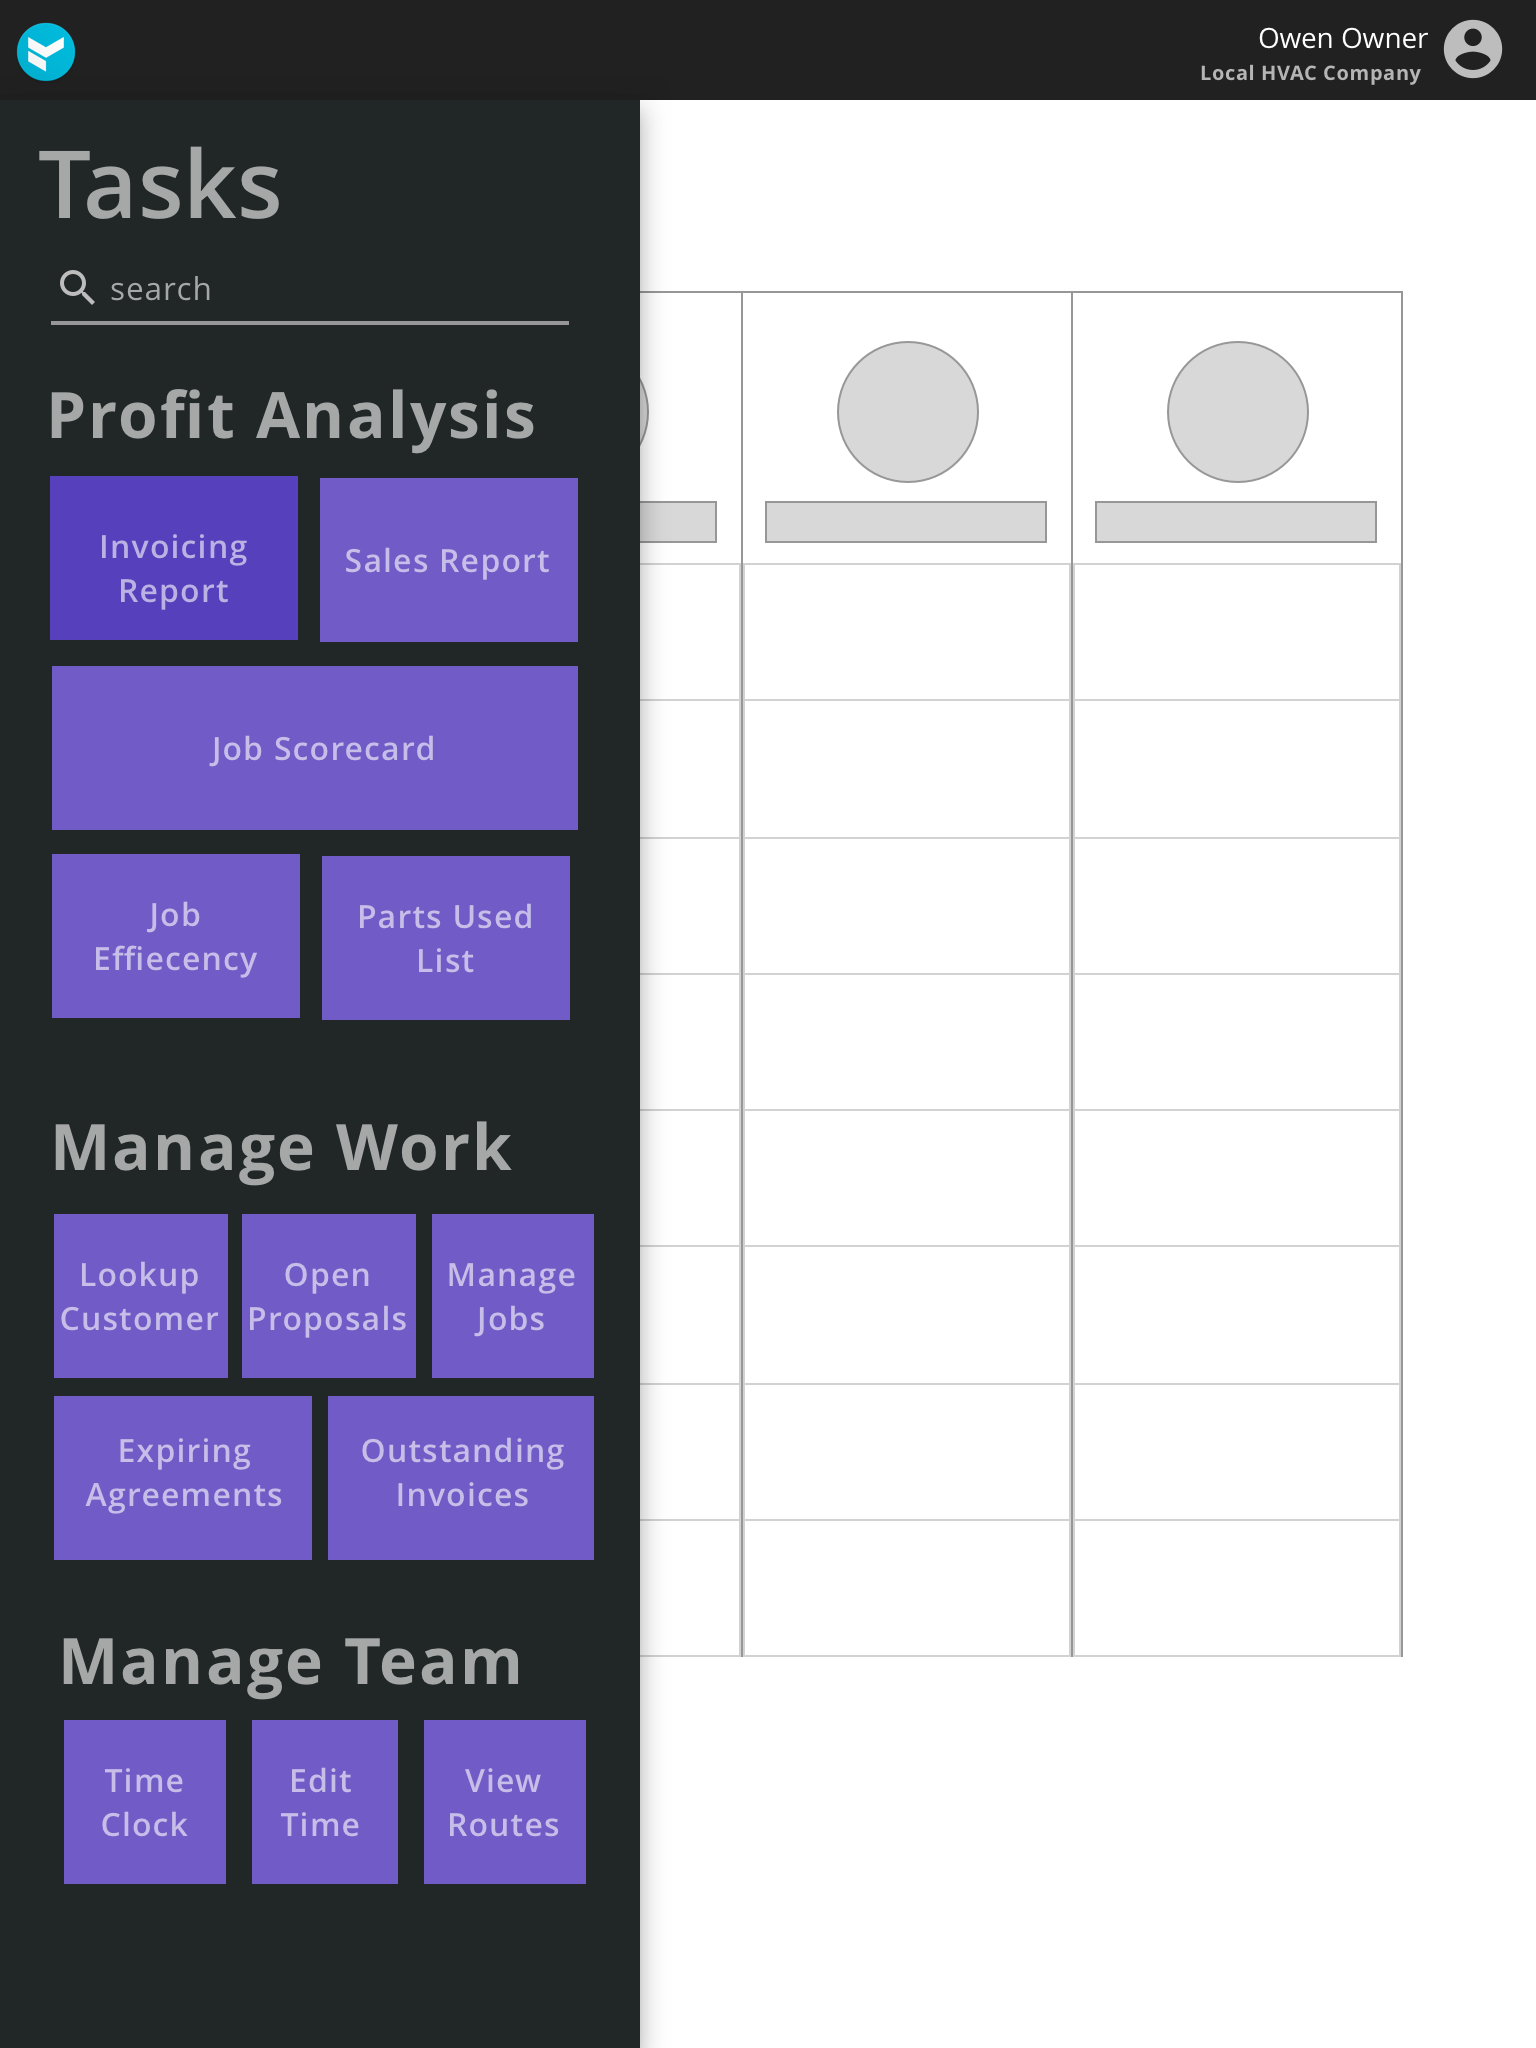 Metro style task groups, tablet view, v1